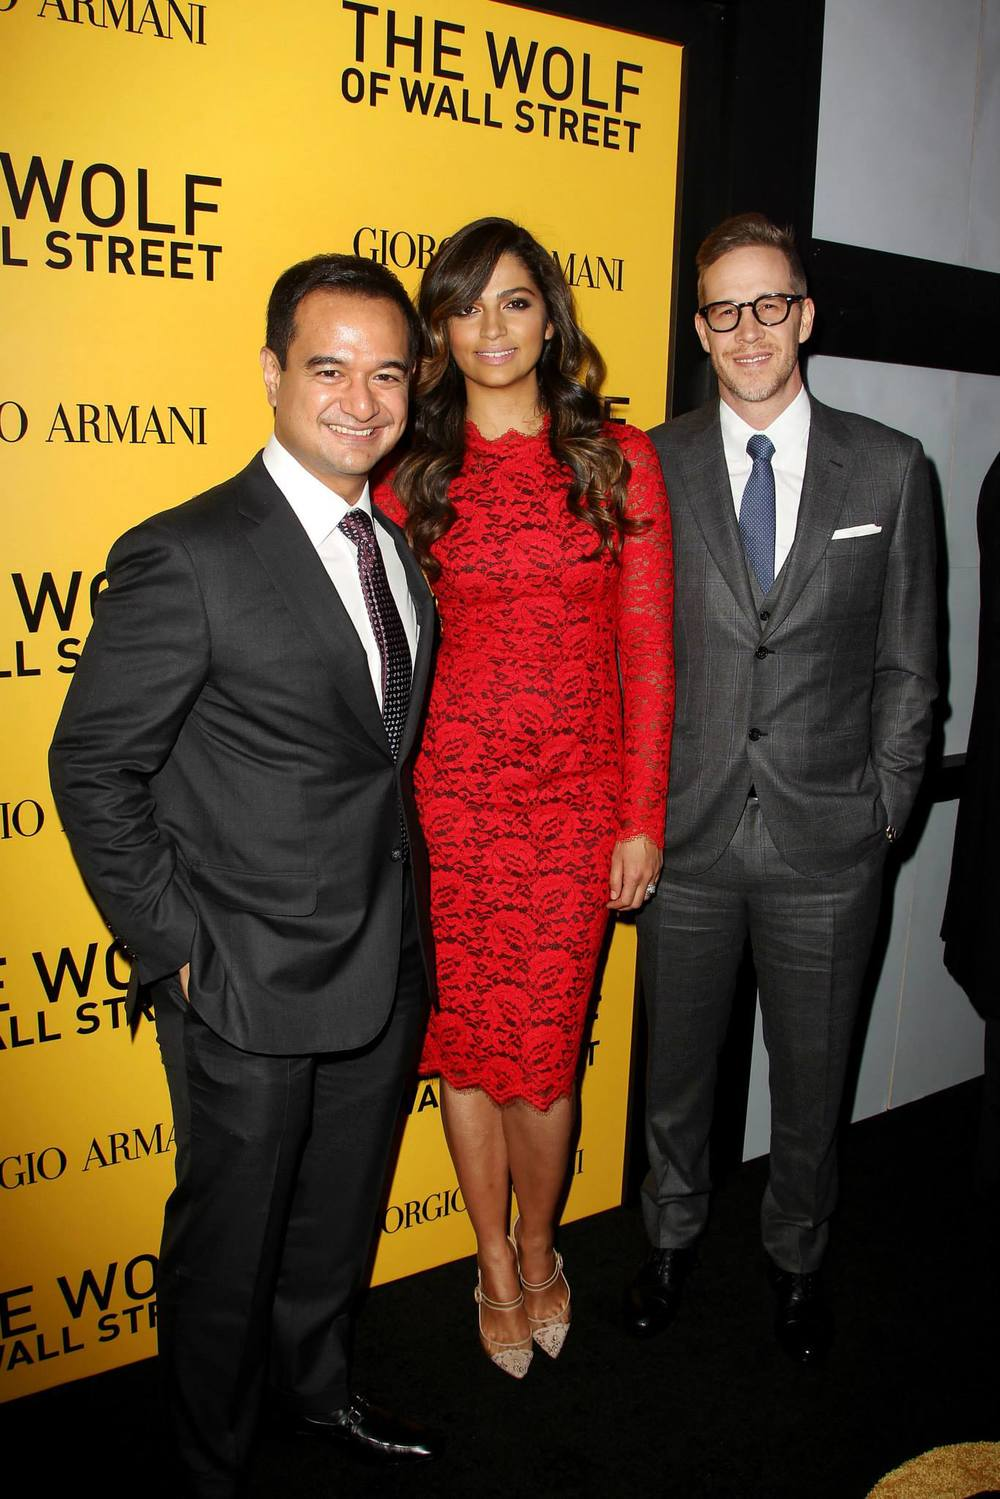 Riza-Aziz-Joey-McFarland-Producers-red-carpet-at-the-new-york-city-premiere-of-the-wolf-of-wall-street-red-granite-pictures-red-granite-international.jpg